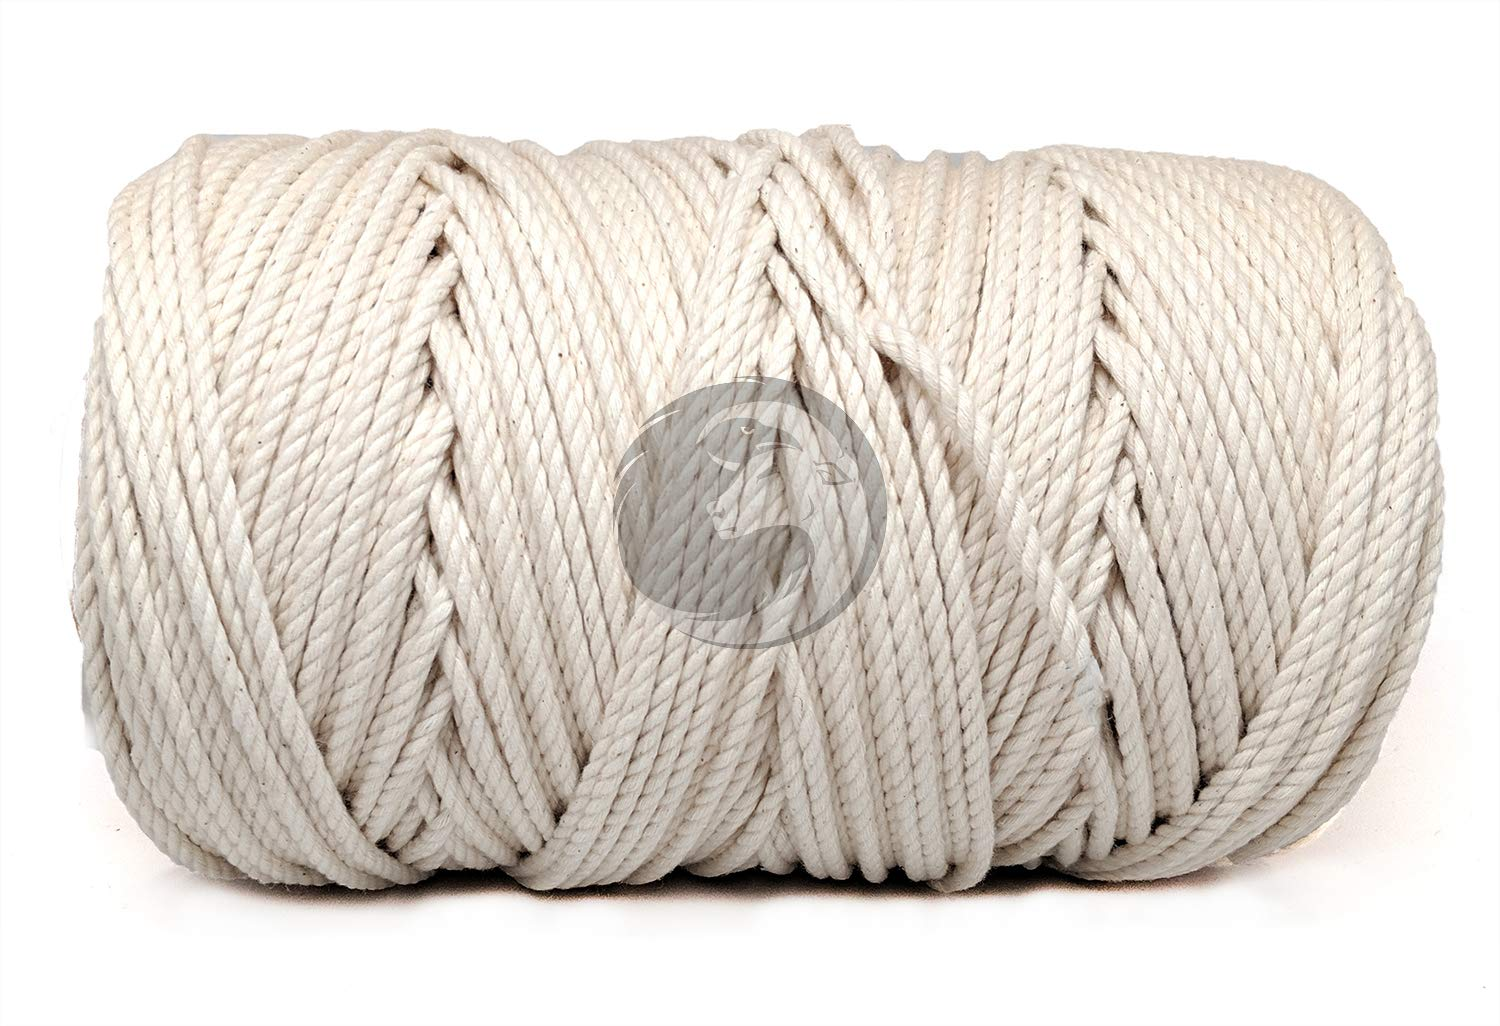 Pet Toys 3//8 in x 100 ft Baker /& Butchers Twine White  USA Made Natural Cord Macram/é Ravenox 100/% Cotton Twisted Rope   Crafts Knotting